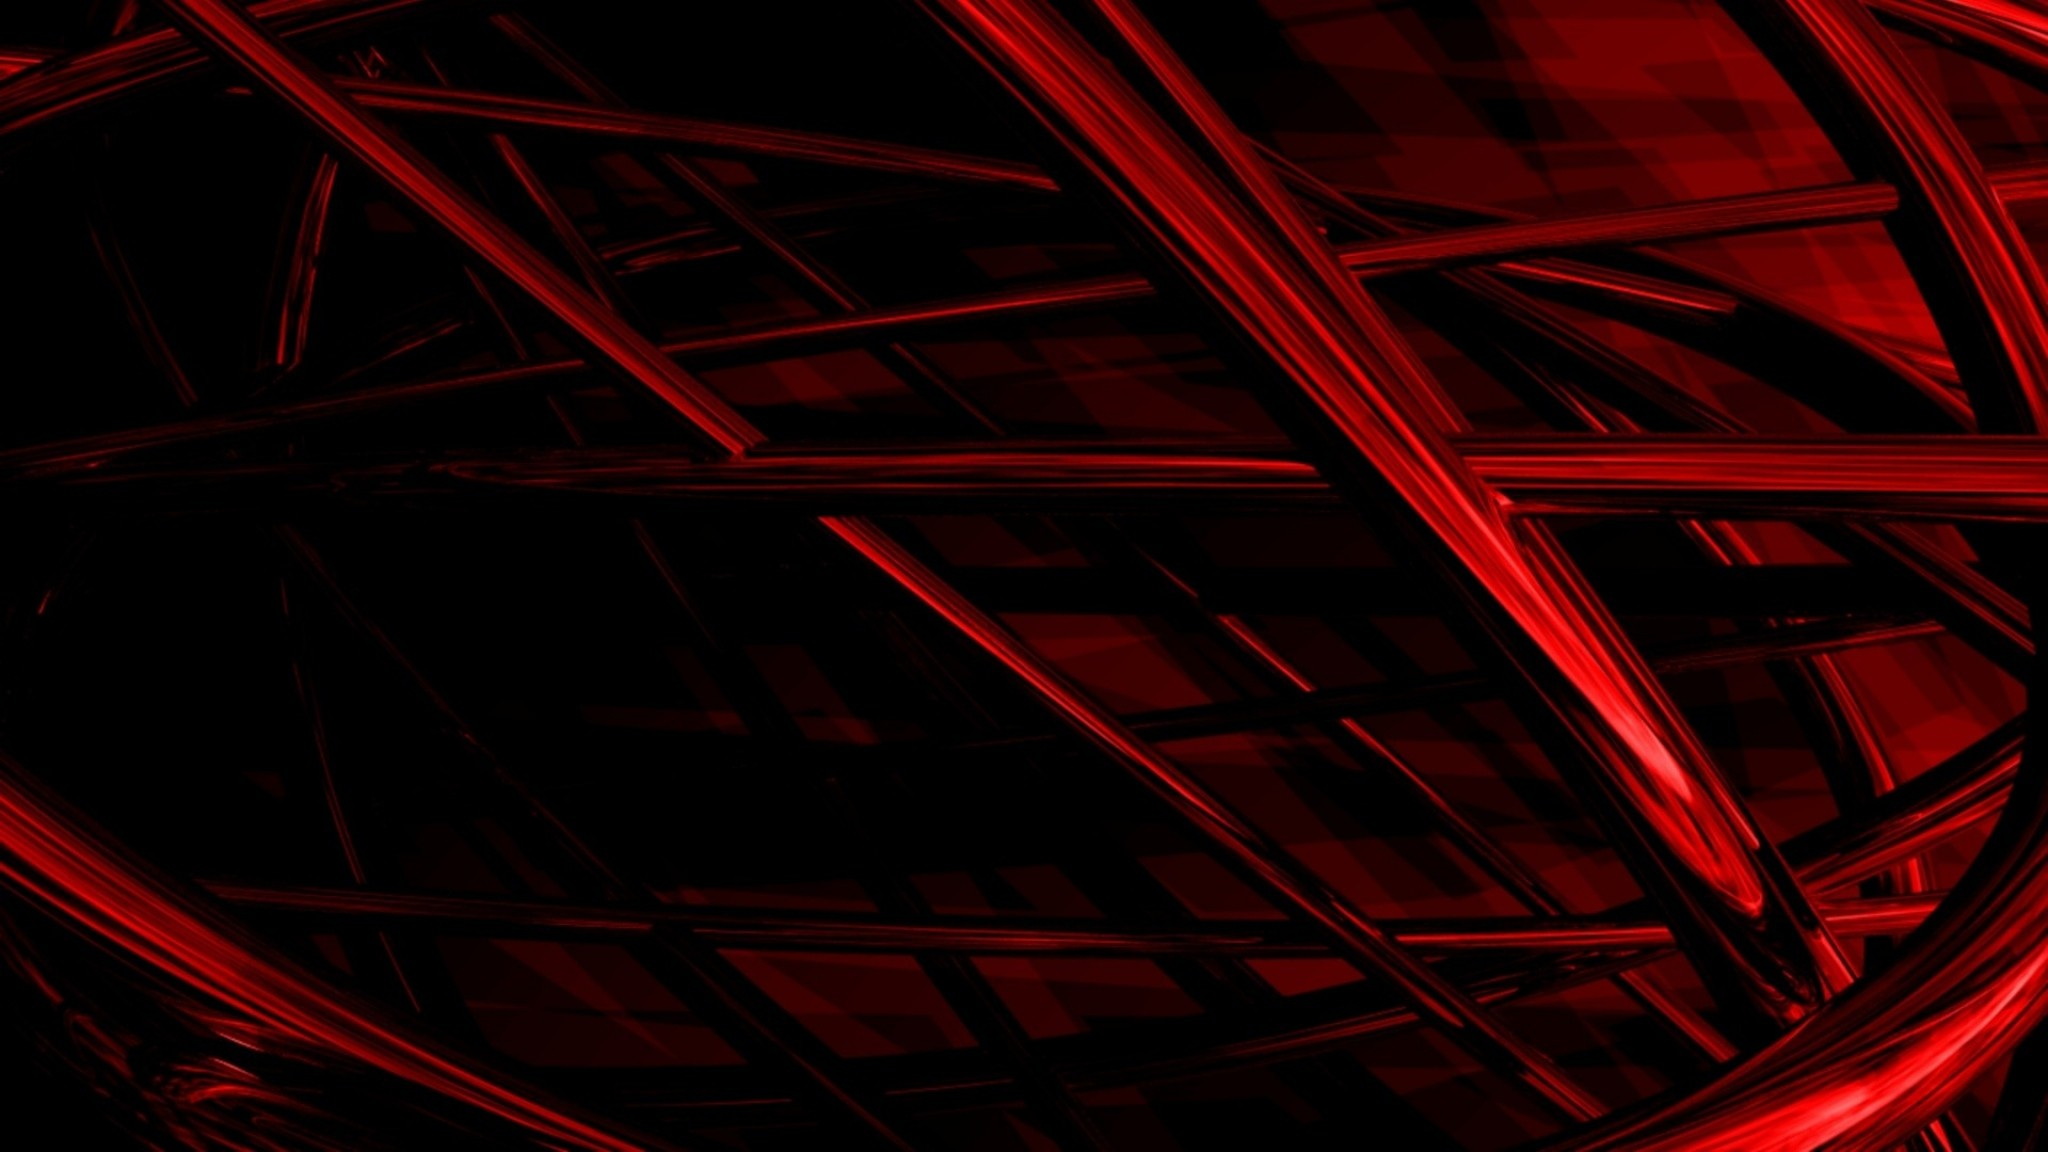 Dark red wallpaper hd 65 images - Black red abstract wallpaper ...